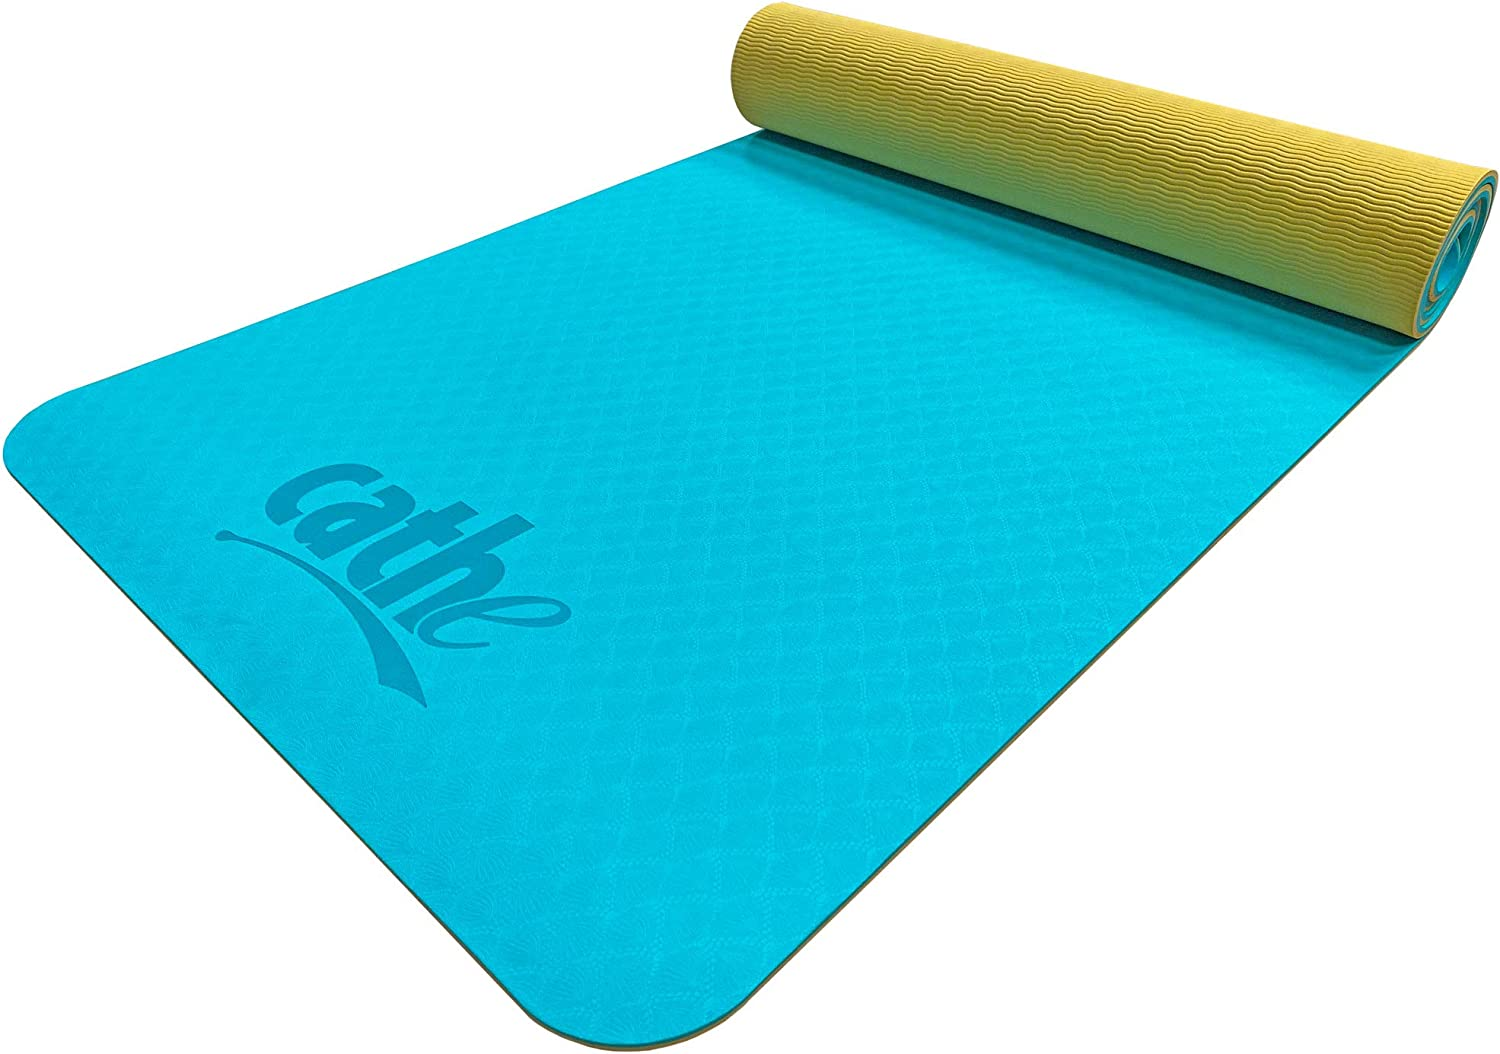 Cathe Aqua Eco-Friendly Extra Thick TPE In a popularity - Boston Mall Mat Exercise Yoga Perf